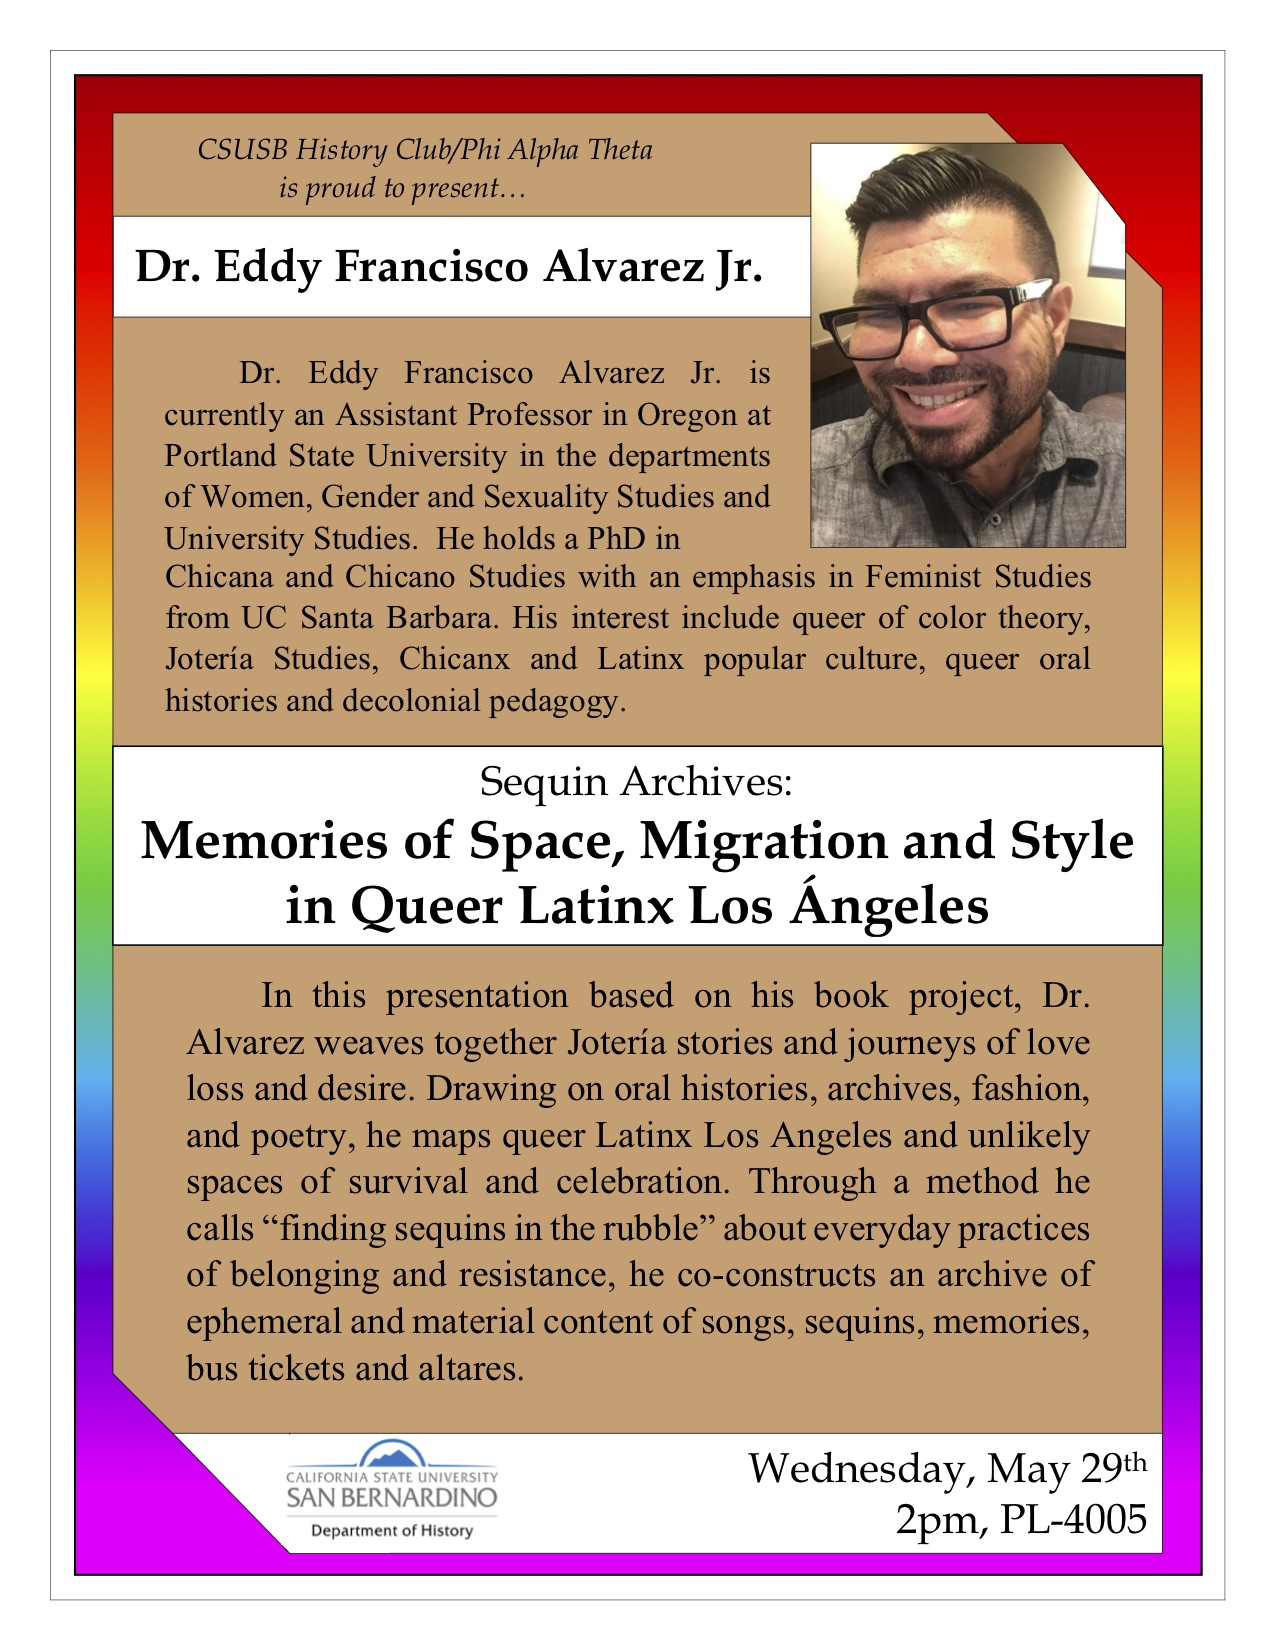 """""""Sequin Archives: Memories of Space, Migration, and Style in Queer Latinx Los Angeles,"""" will be on May 29"""